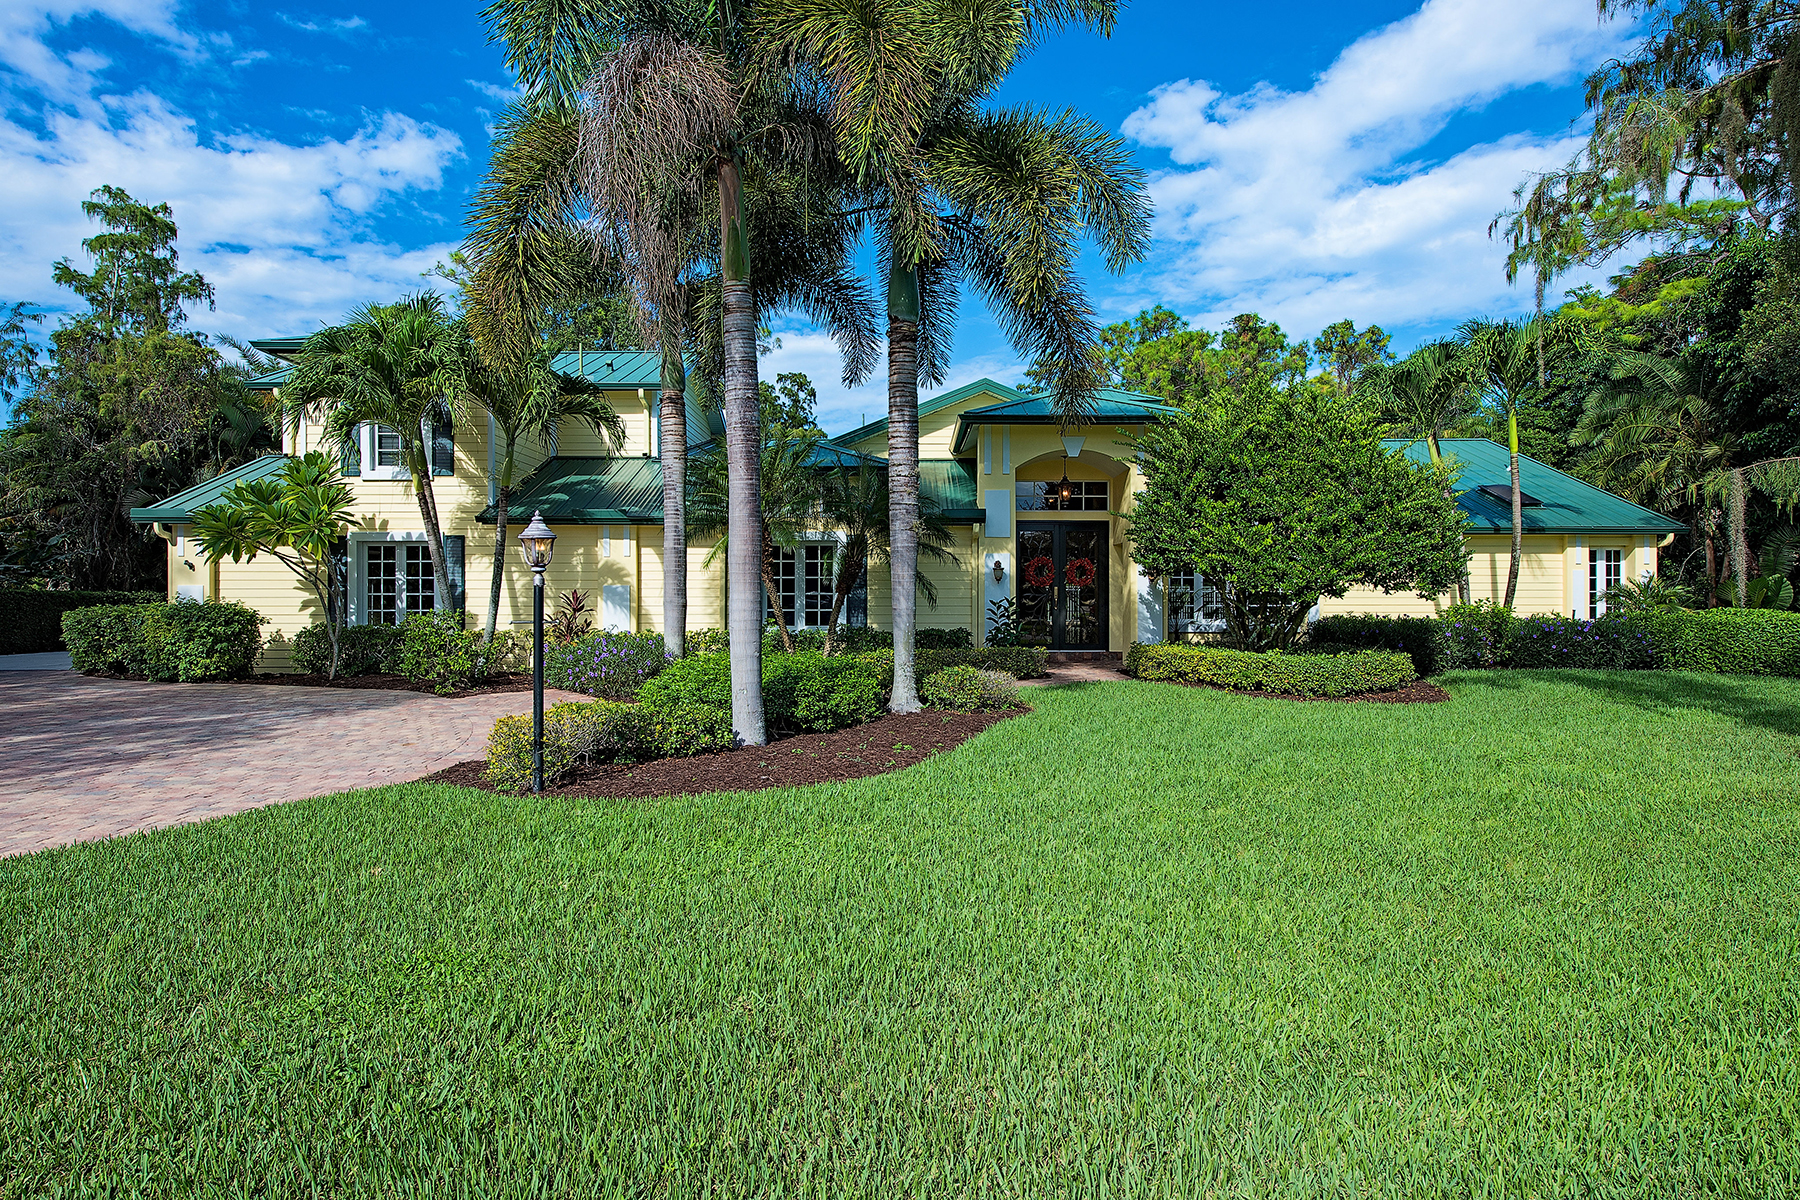 Single Family Home for Sale at QUAIL CREEK 13001 White Violet Dr Naples, Florida, 34119 United States